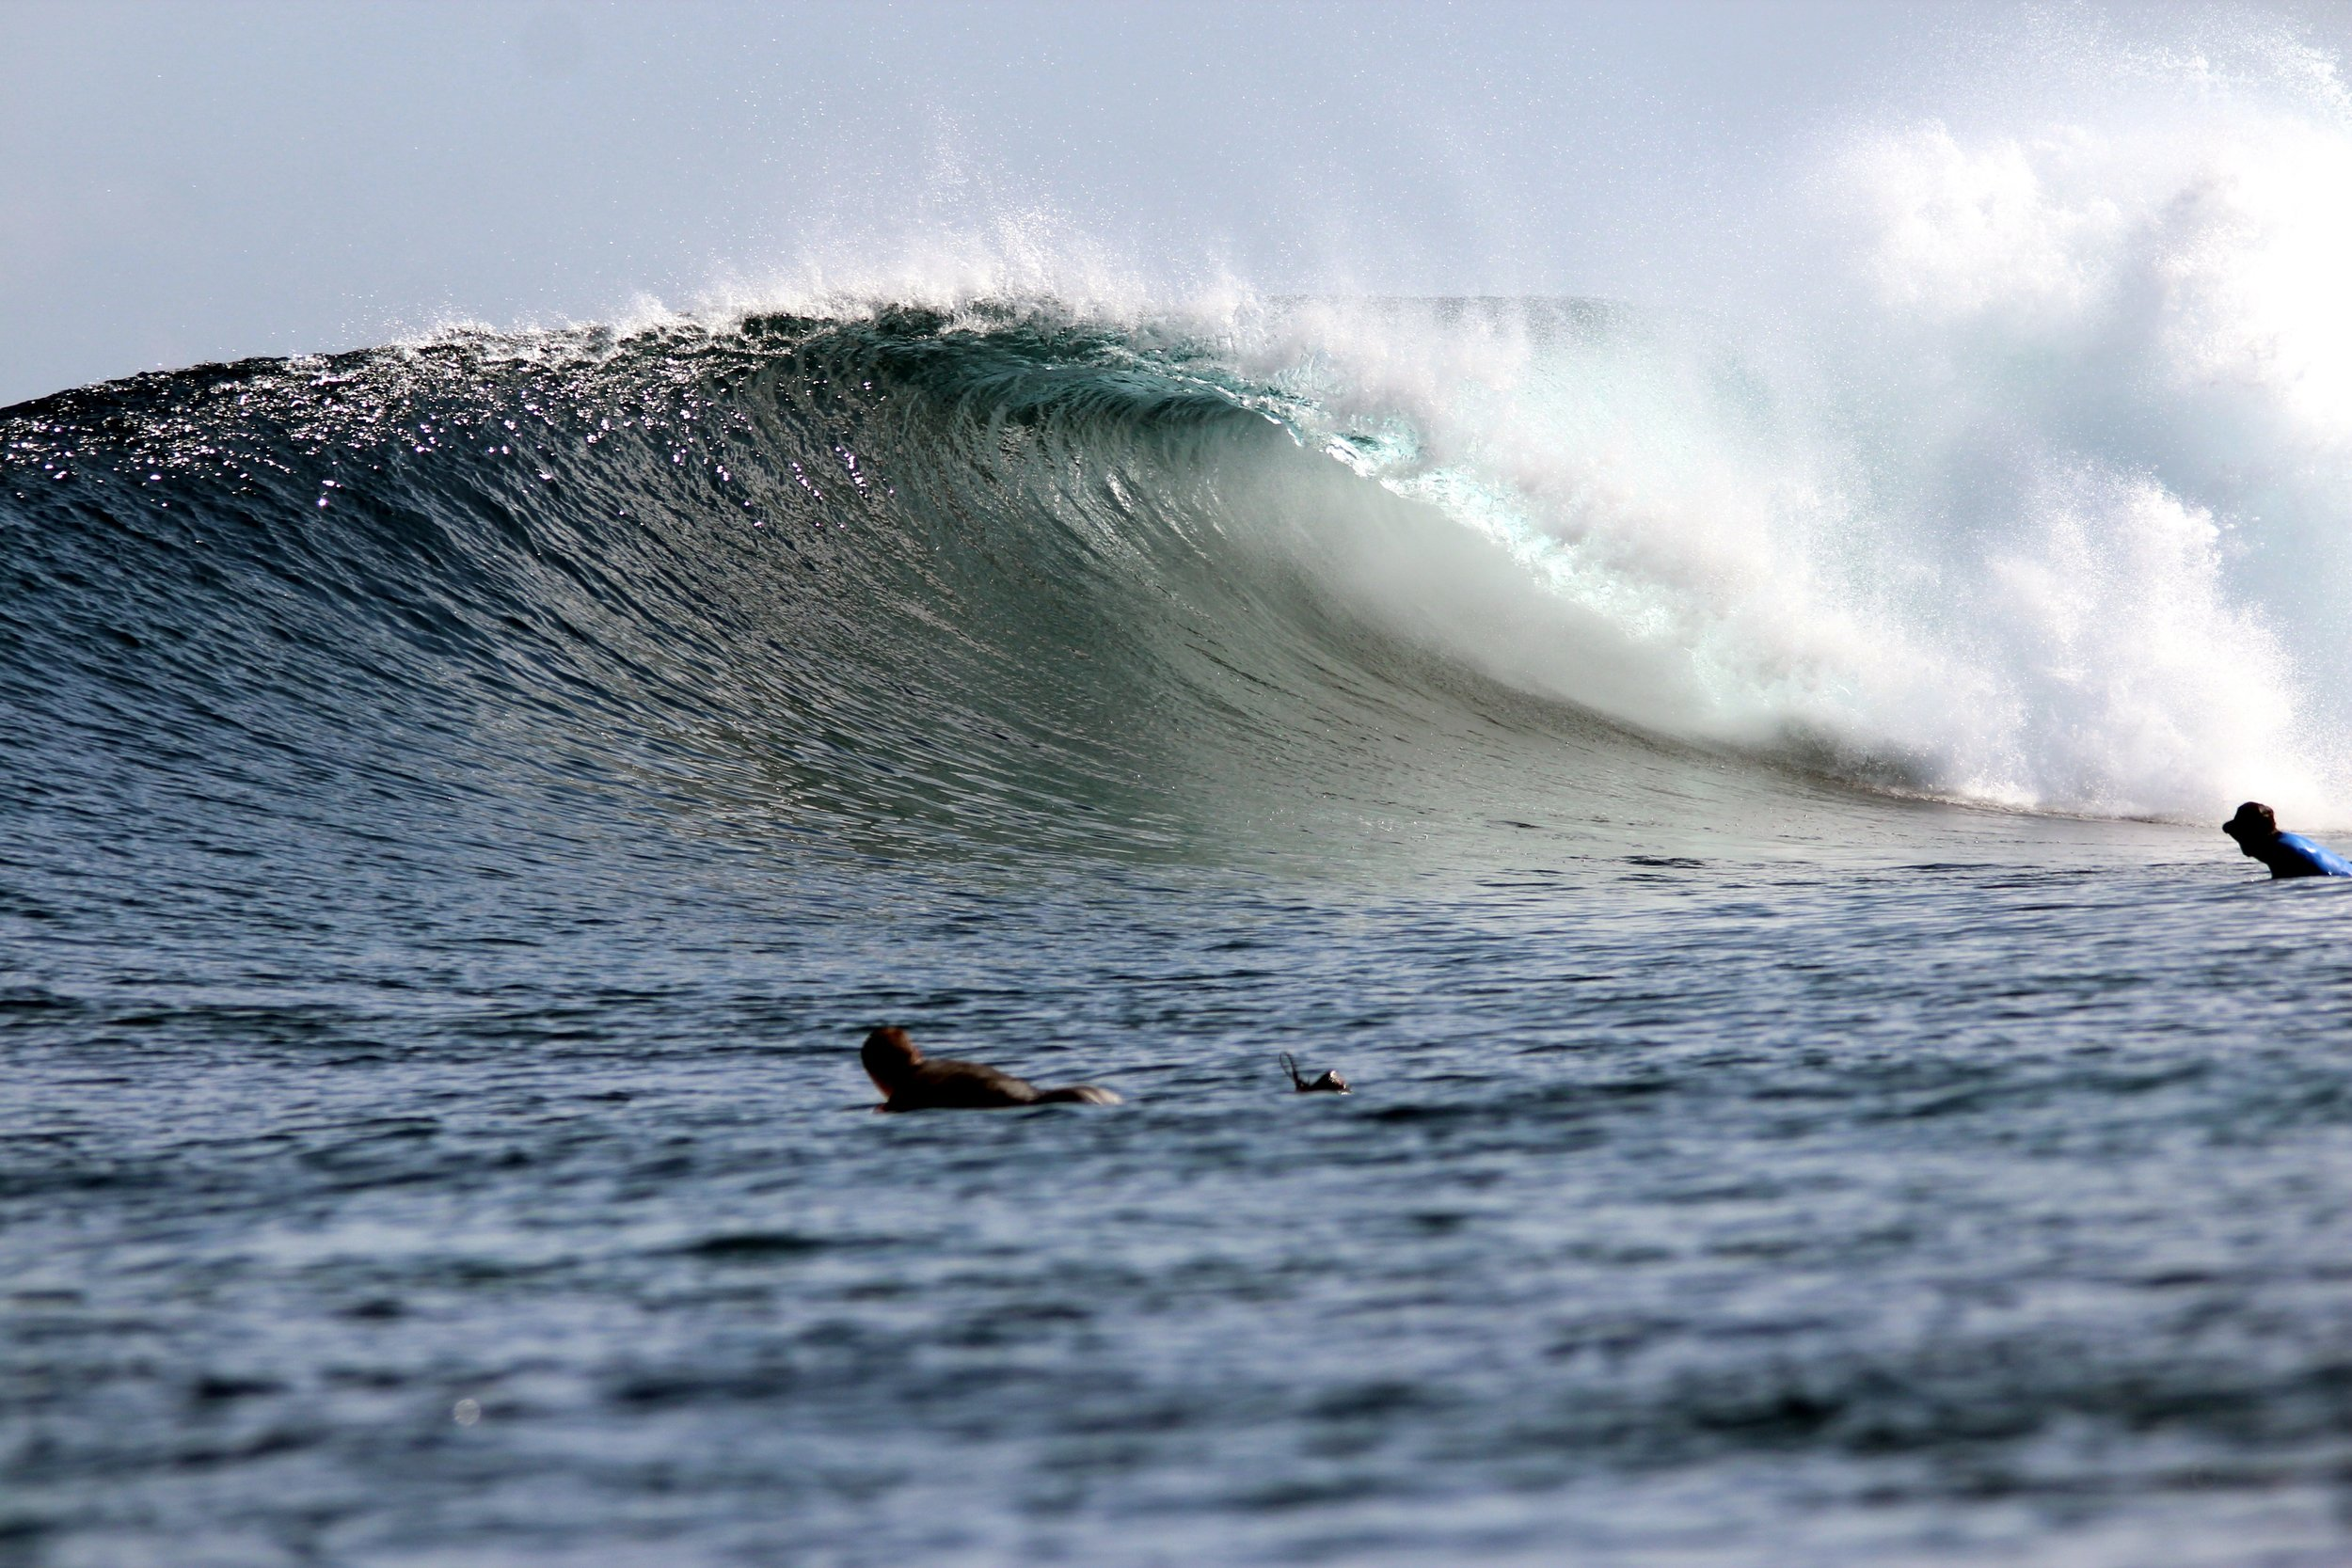 Surf uncrowded waves with a few others